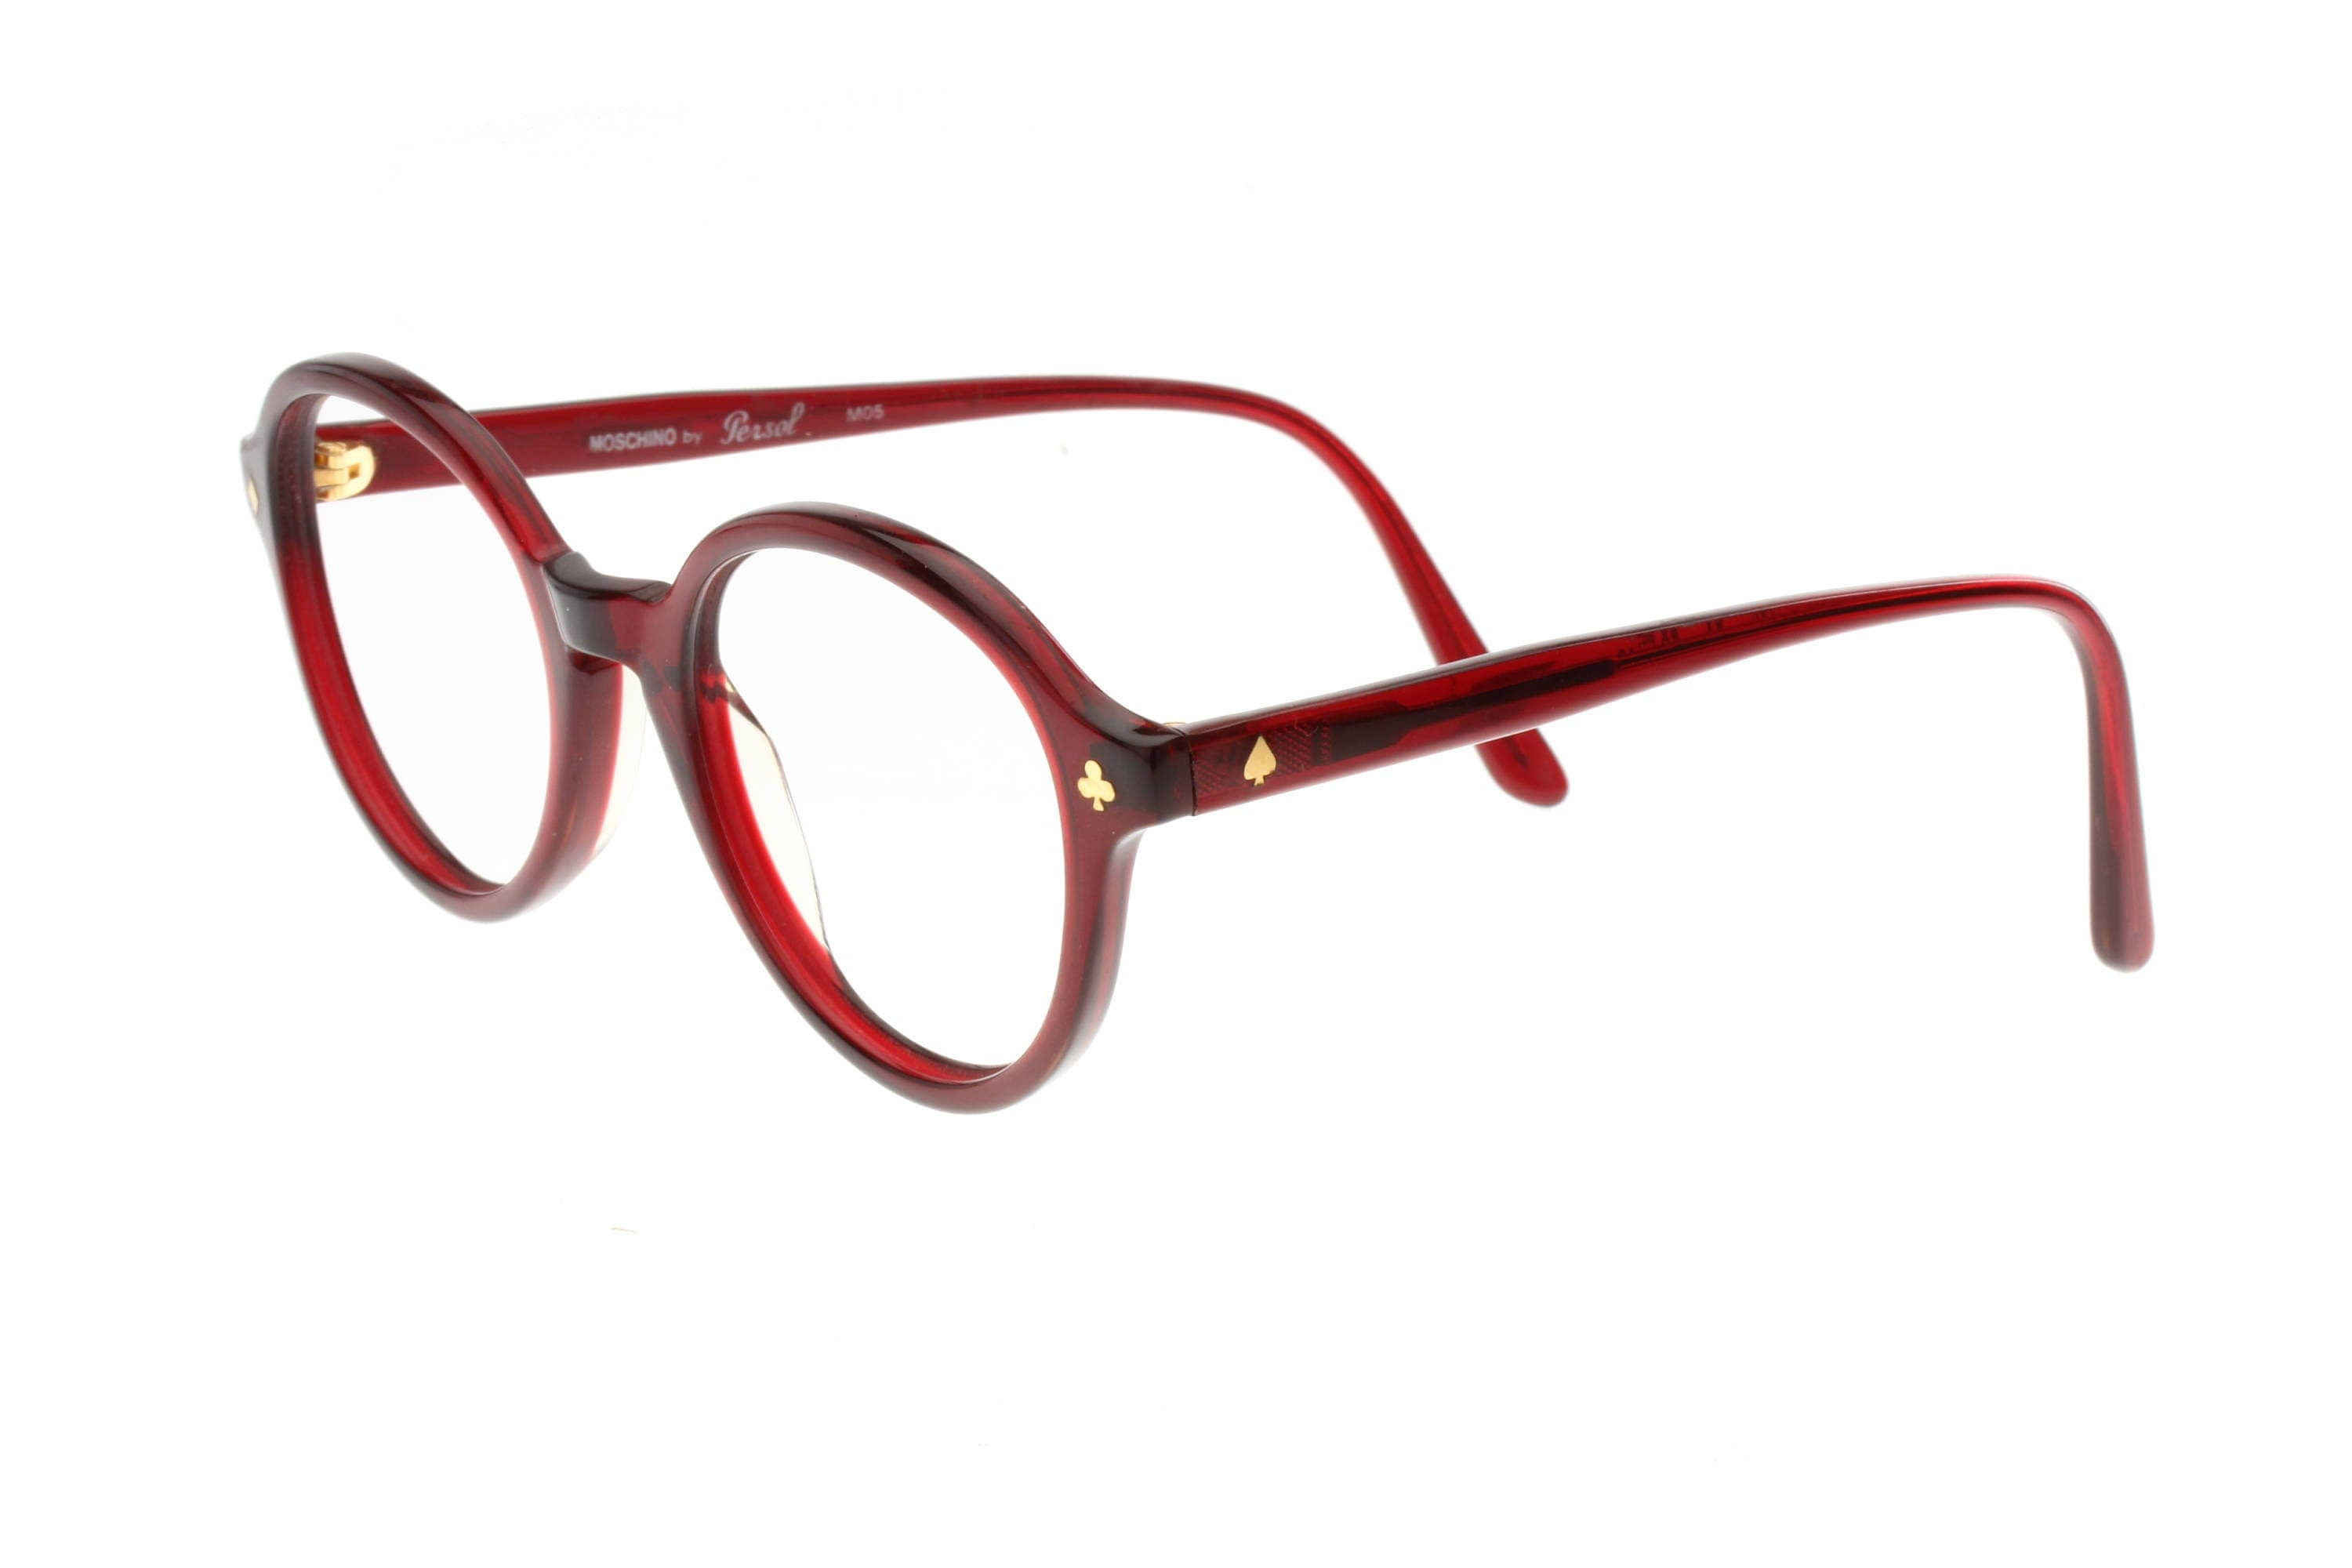 7aa7a880fb569 Moschino M05 by Persol Ratti ultra rare card seeds pins translucent  burgundy cello round eyeglasses frames